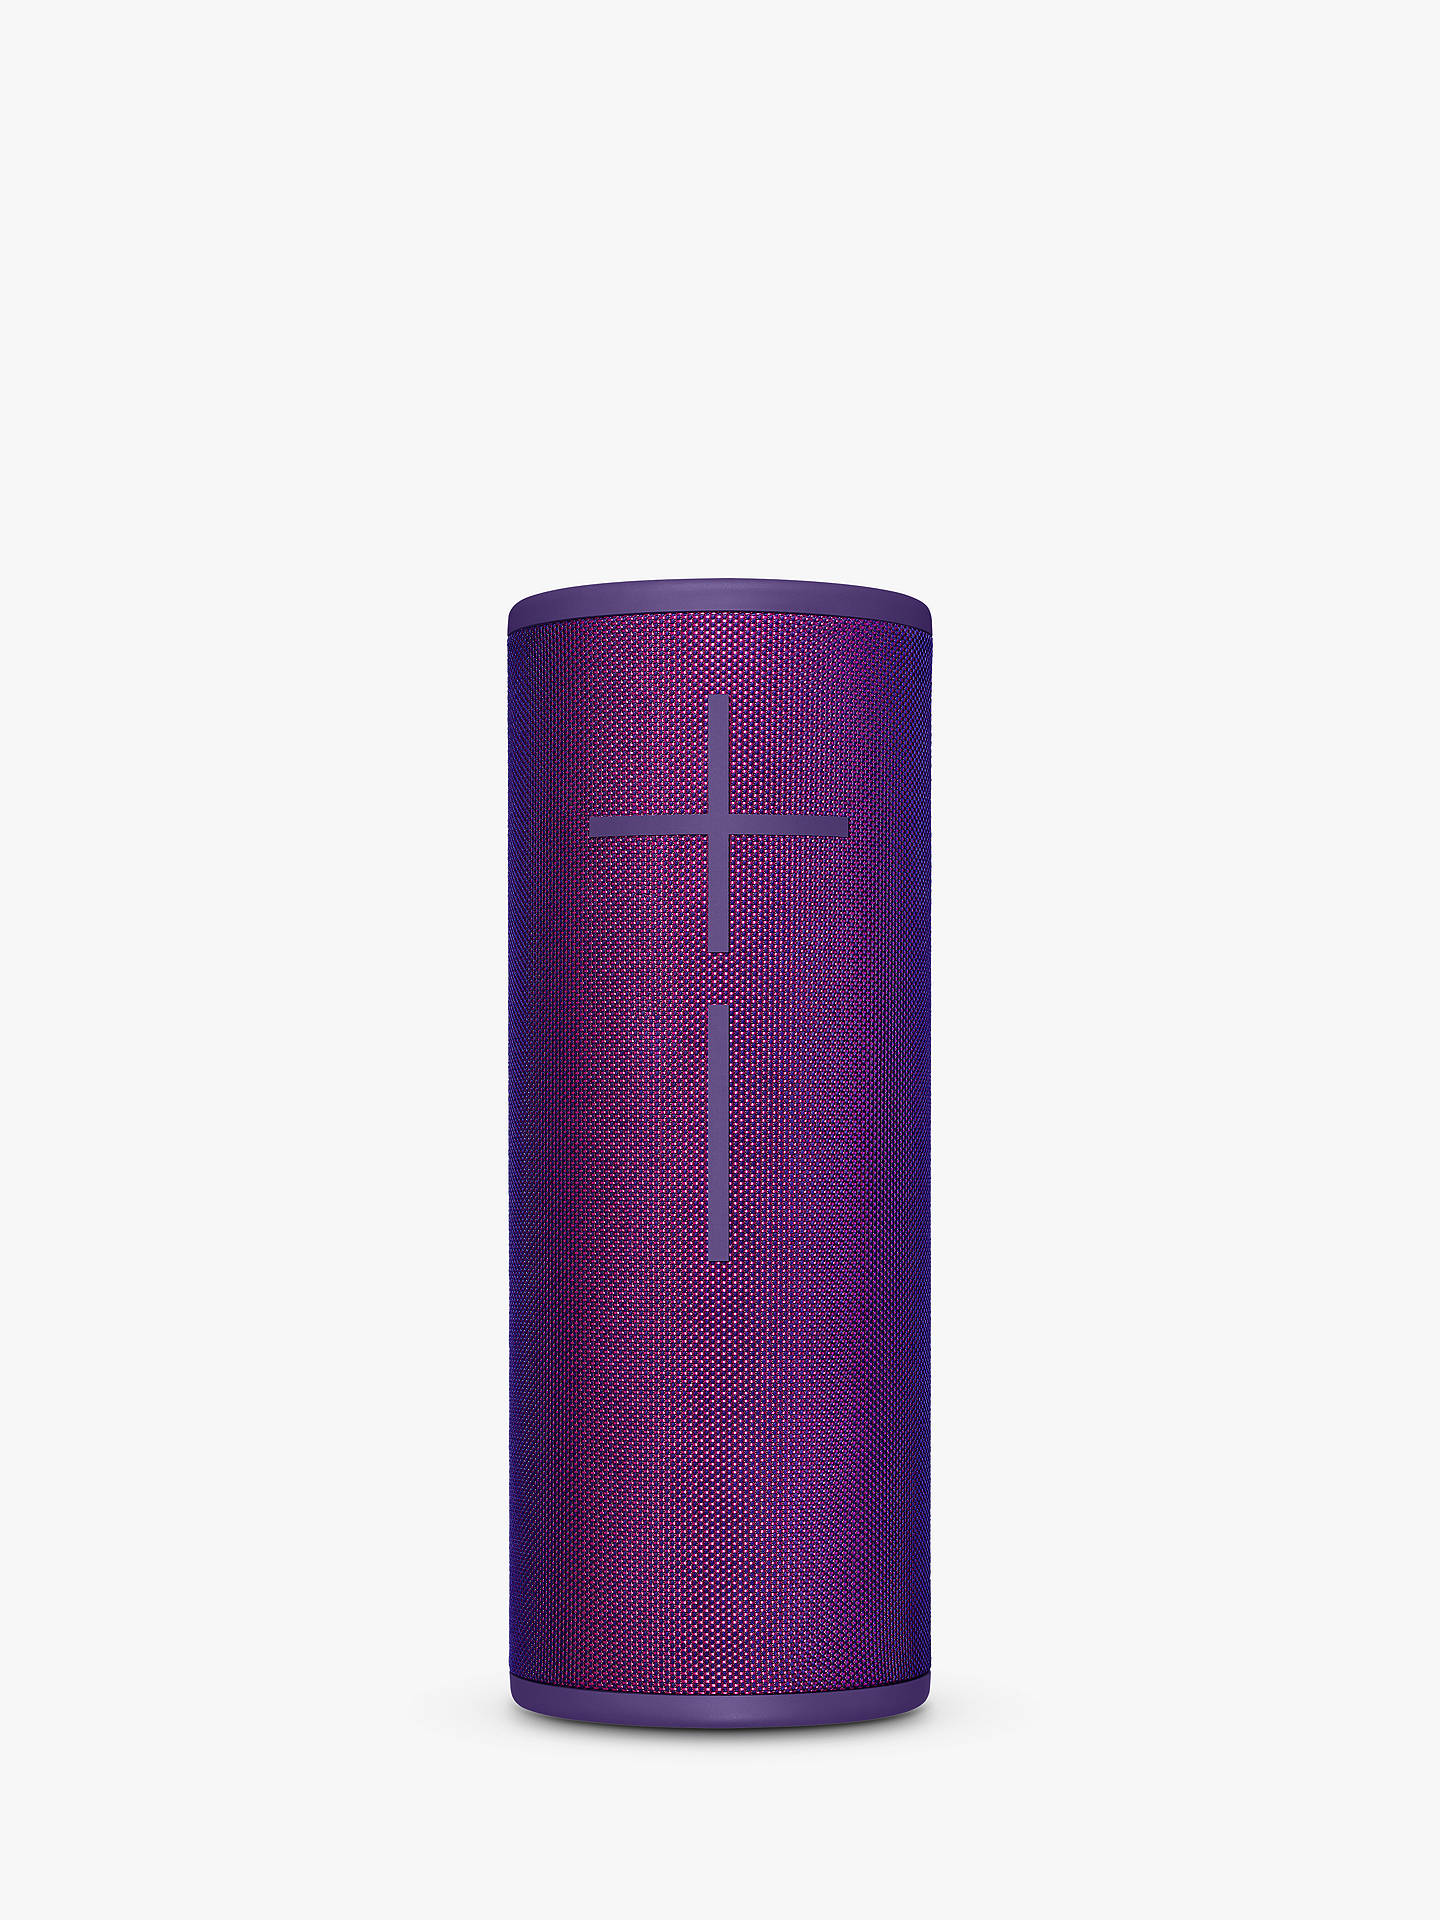 Buy Ultimate Ears MEGABOOM 3 Bluetooth Waterproof Portable Speaker, Ultraviolet Purple Online at johnlewis.com